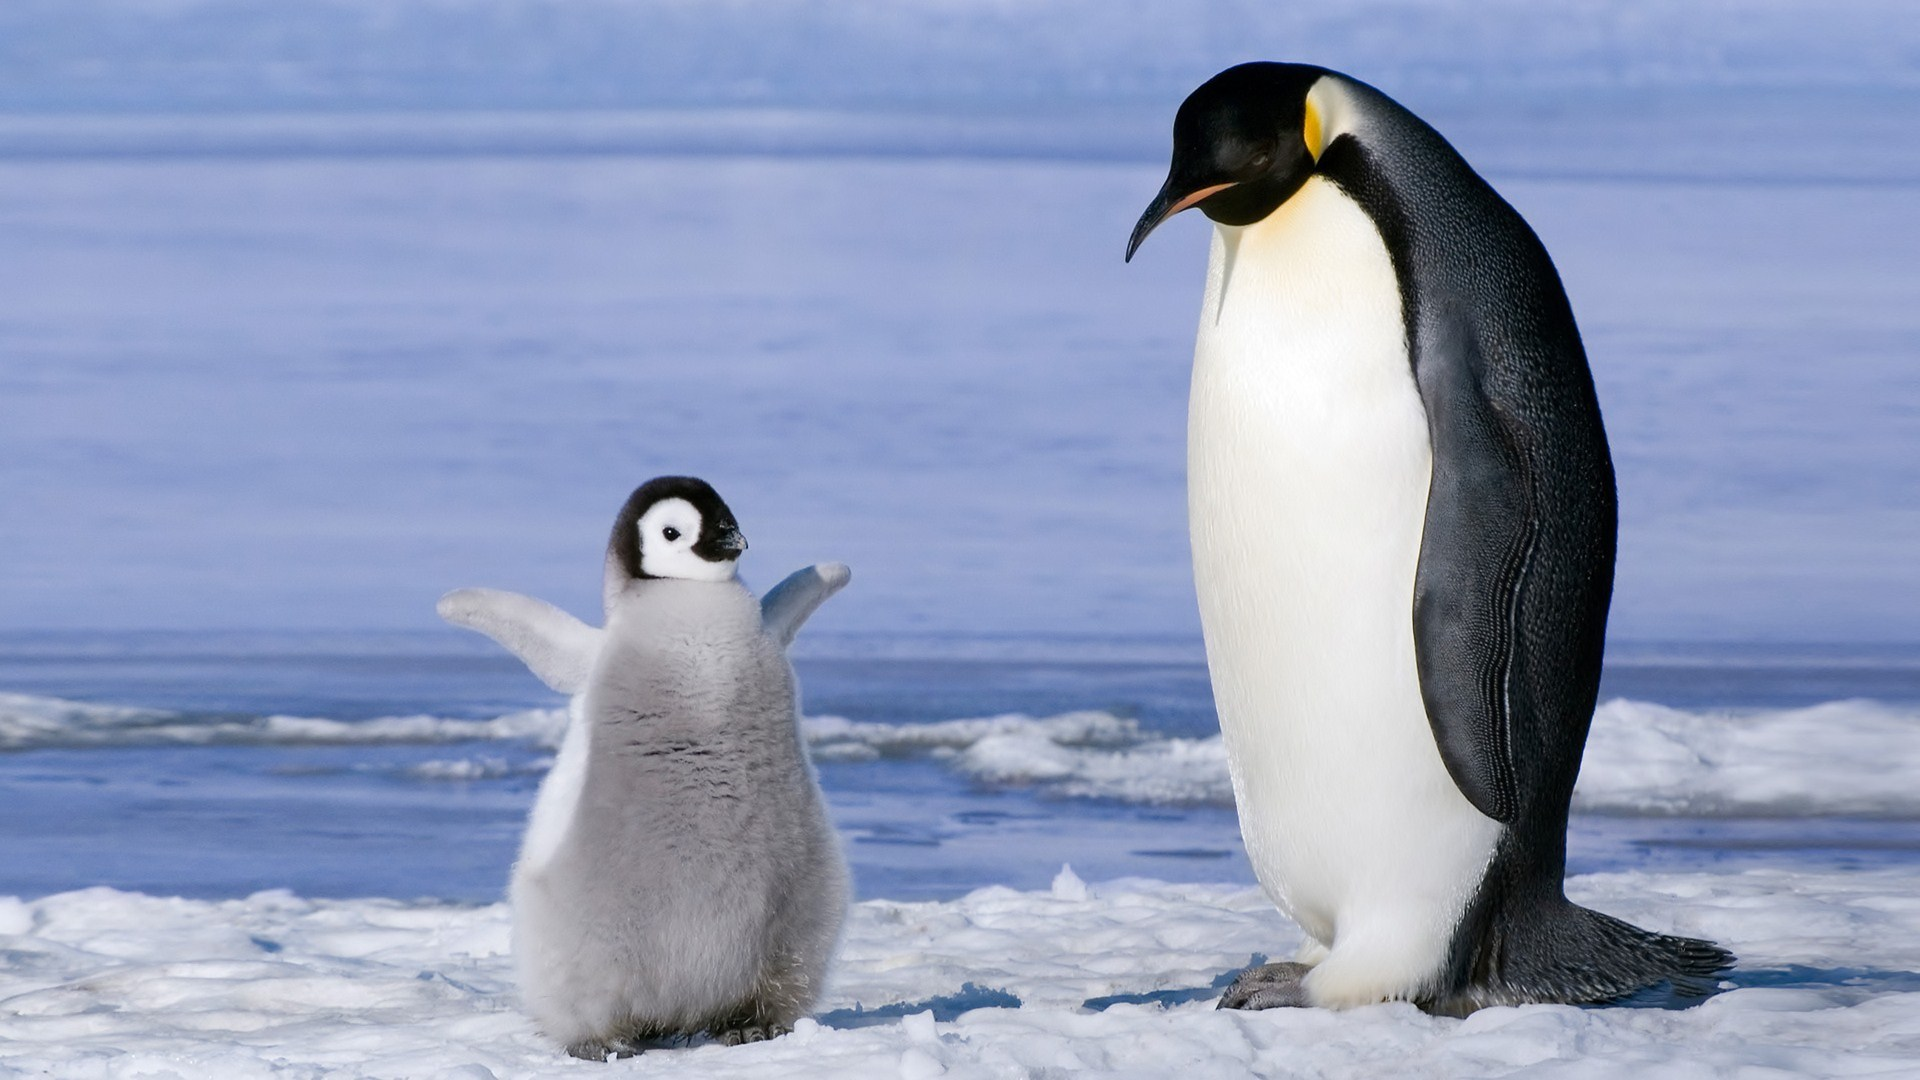 nature penguin baby ice animal hd wallpaper wallpaper | 1920x1080